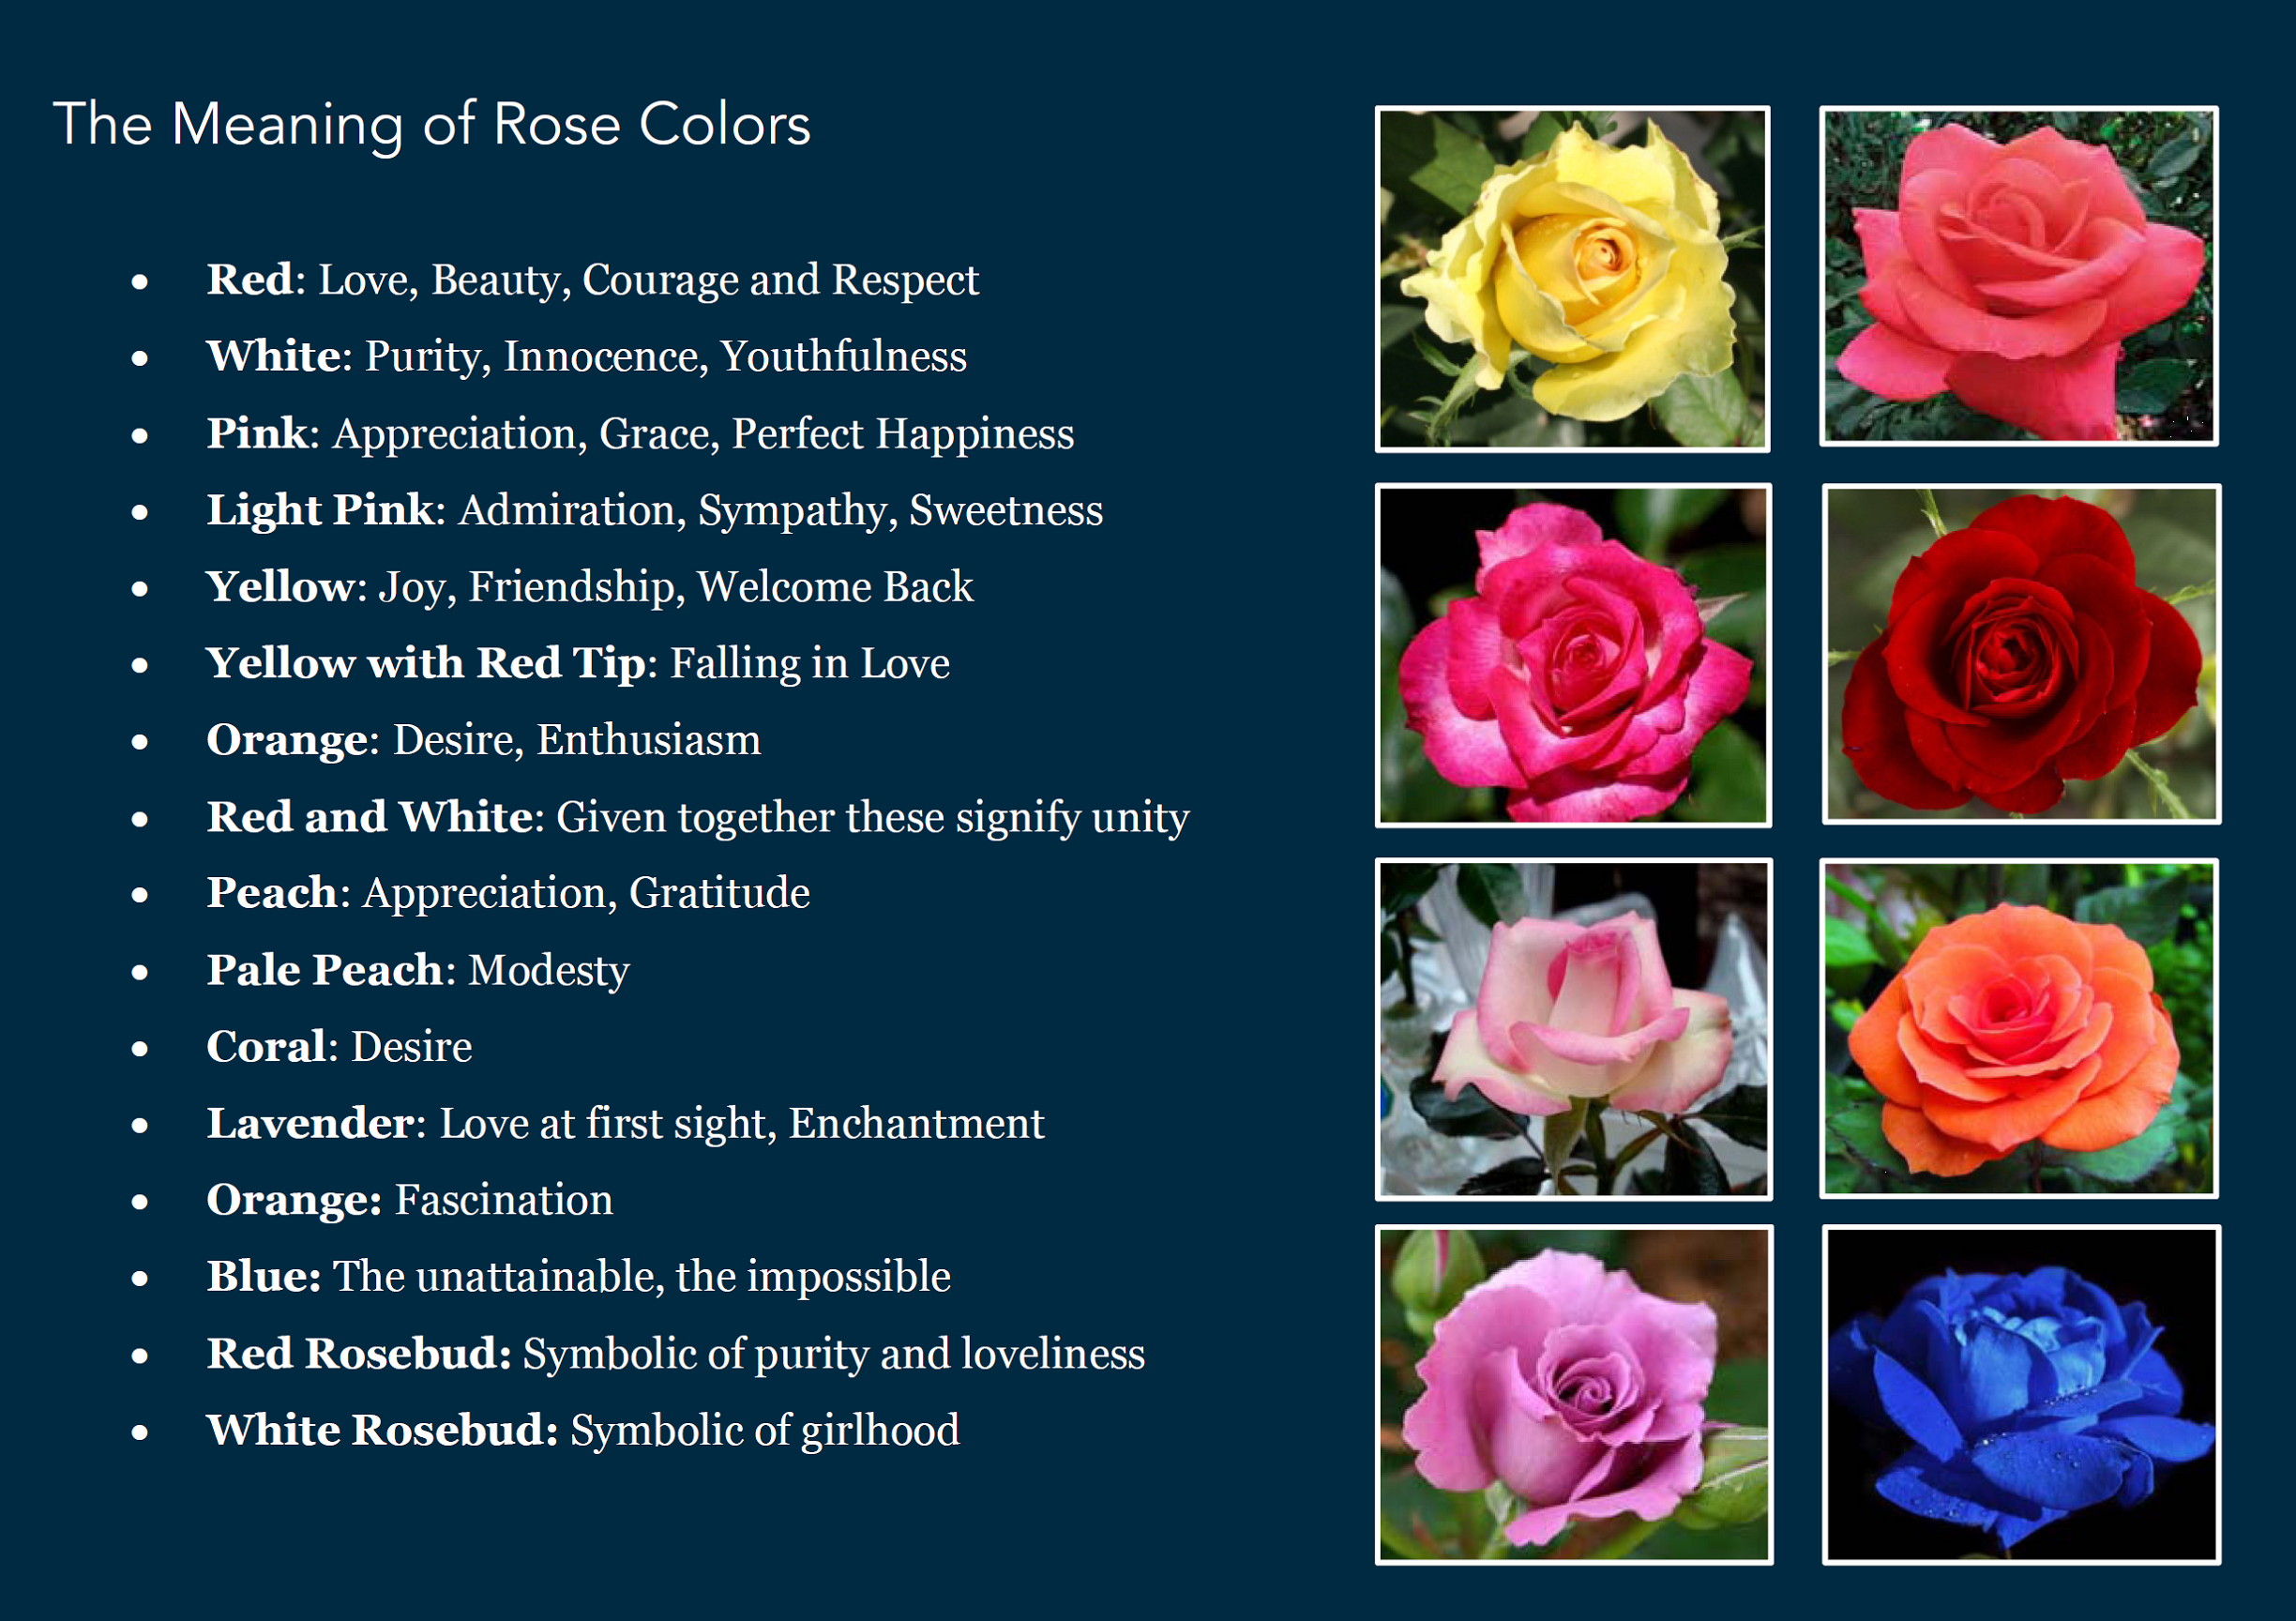 Rose color meanings buffalo wedding florist buffalo wedding rose color meanings buffalo wedding florist buffalo wedding florist beautiful flowers pretty flowers izmirmasajfo